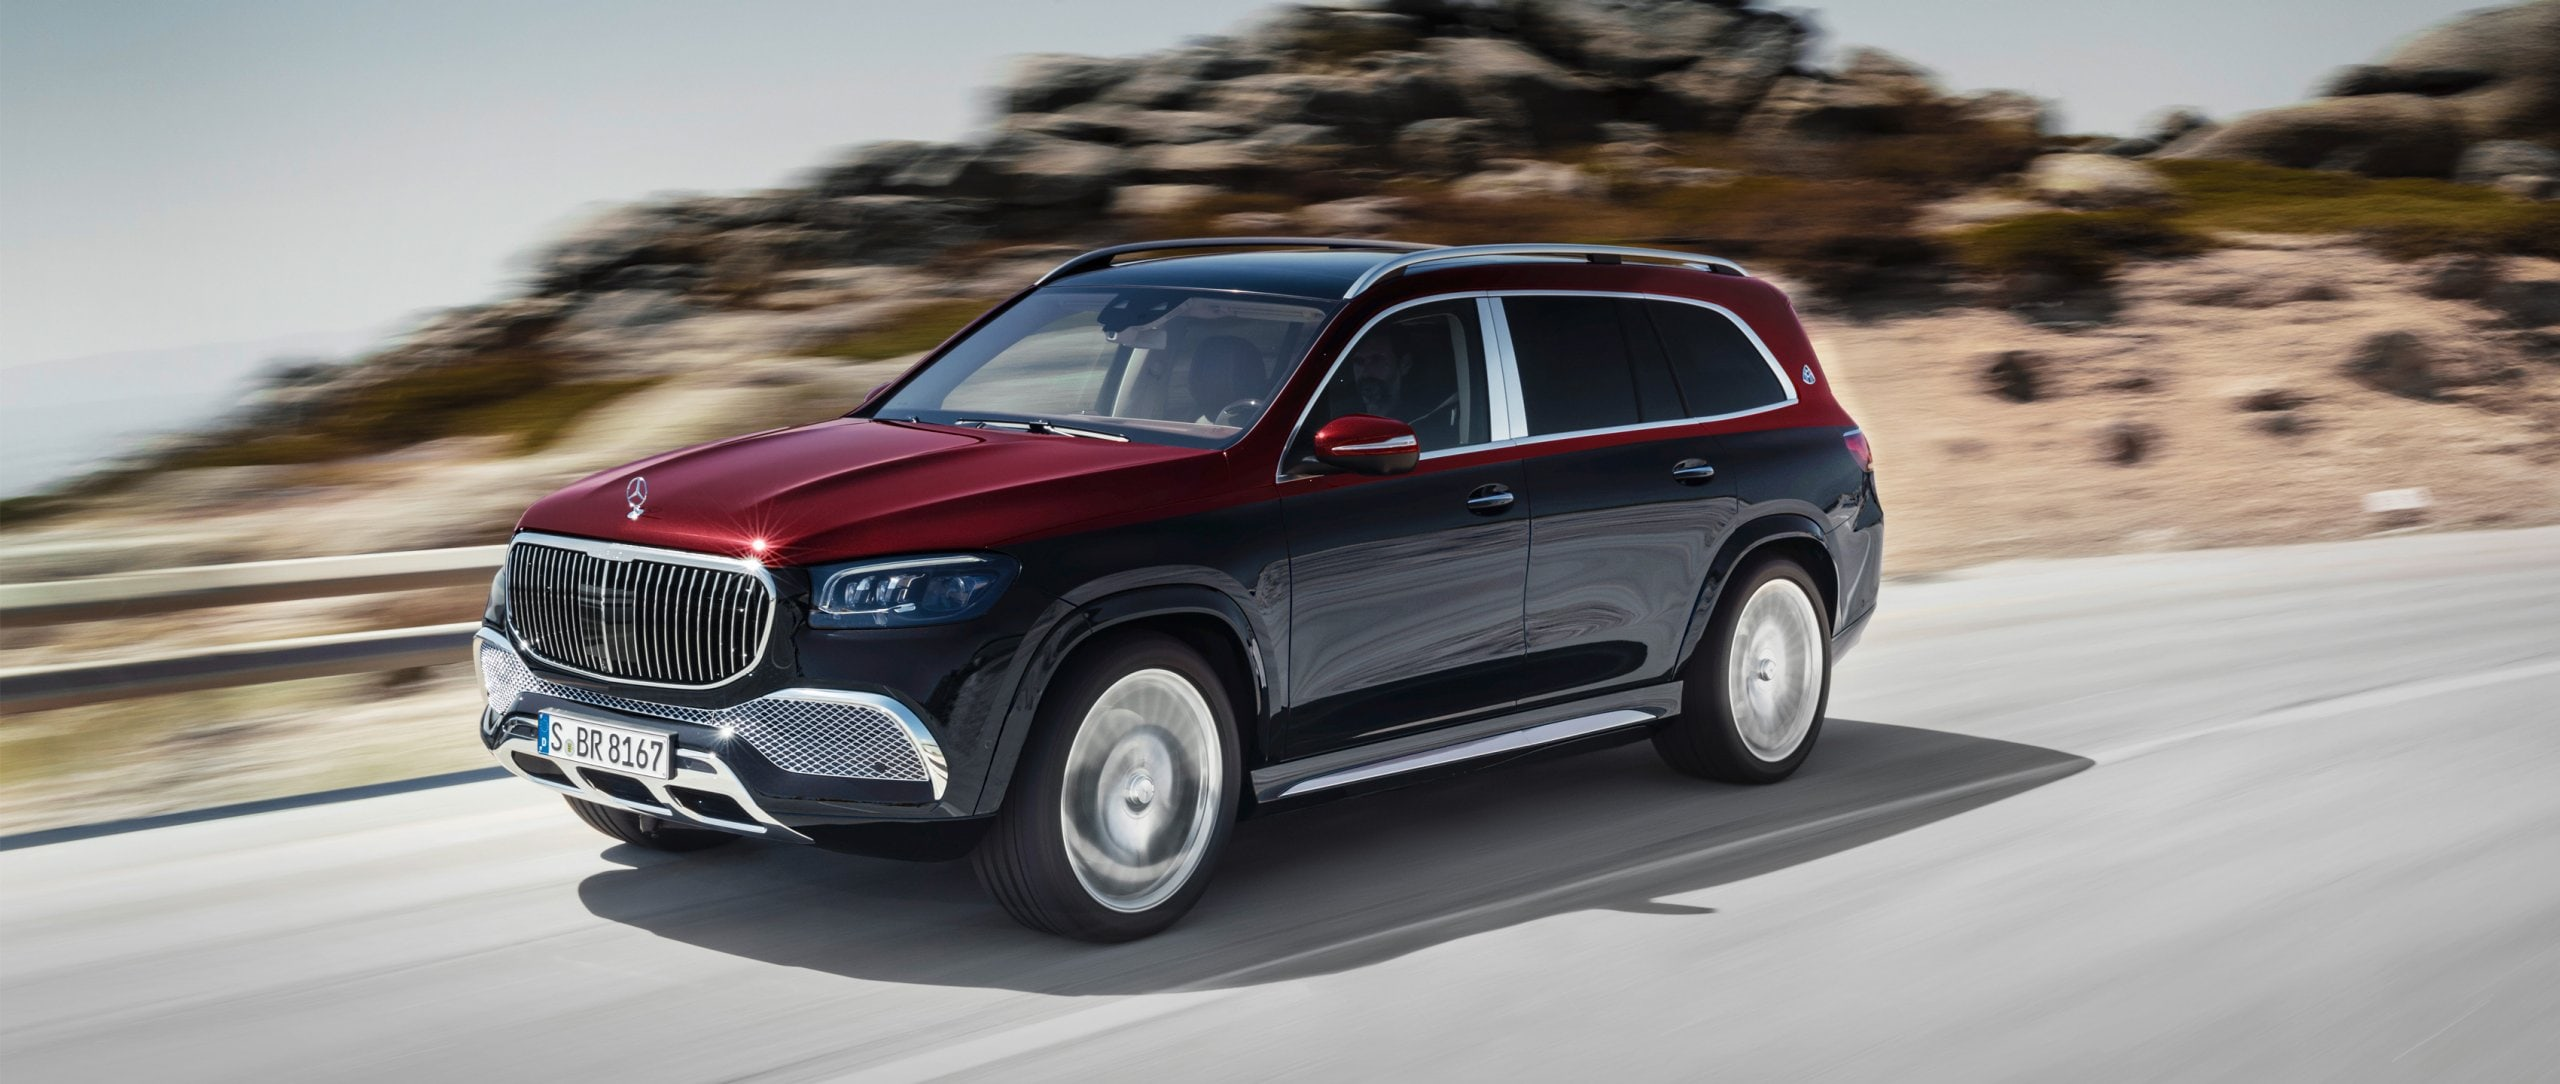 The new 2020 Mercedes-Maybach GLS 600 4MATIC (X 167) in the two-colour paint rubellite red/obsidian black on a country road.